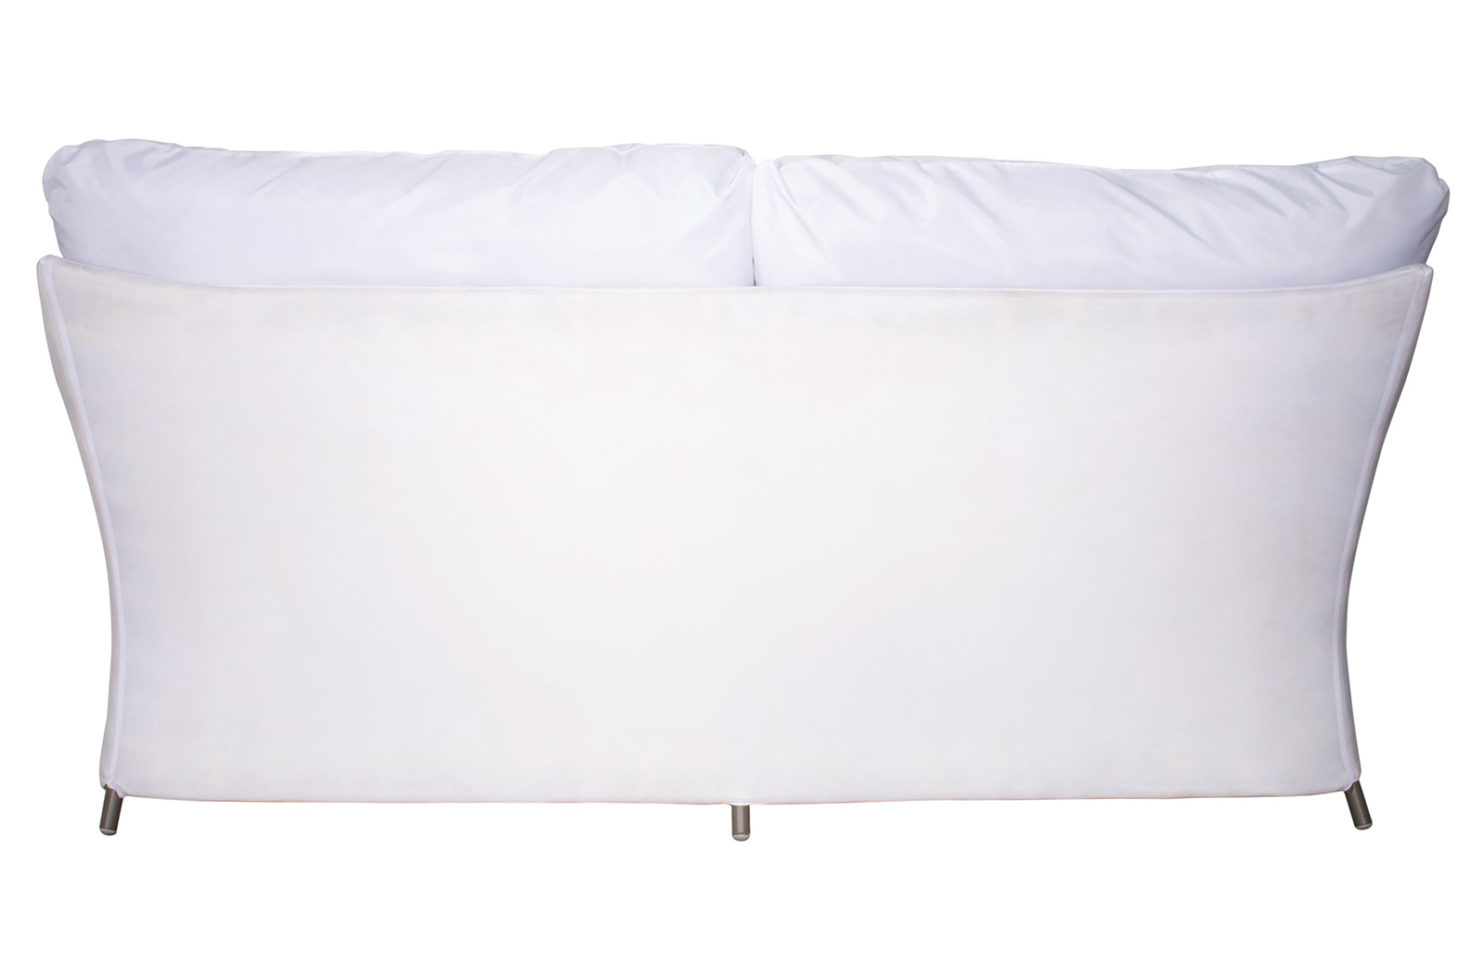 capri sofa frame 620FT094P2 1 back